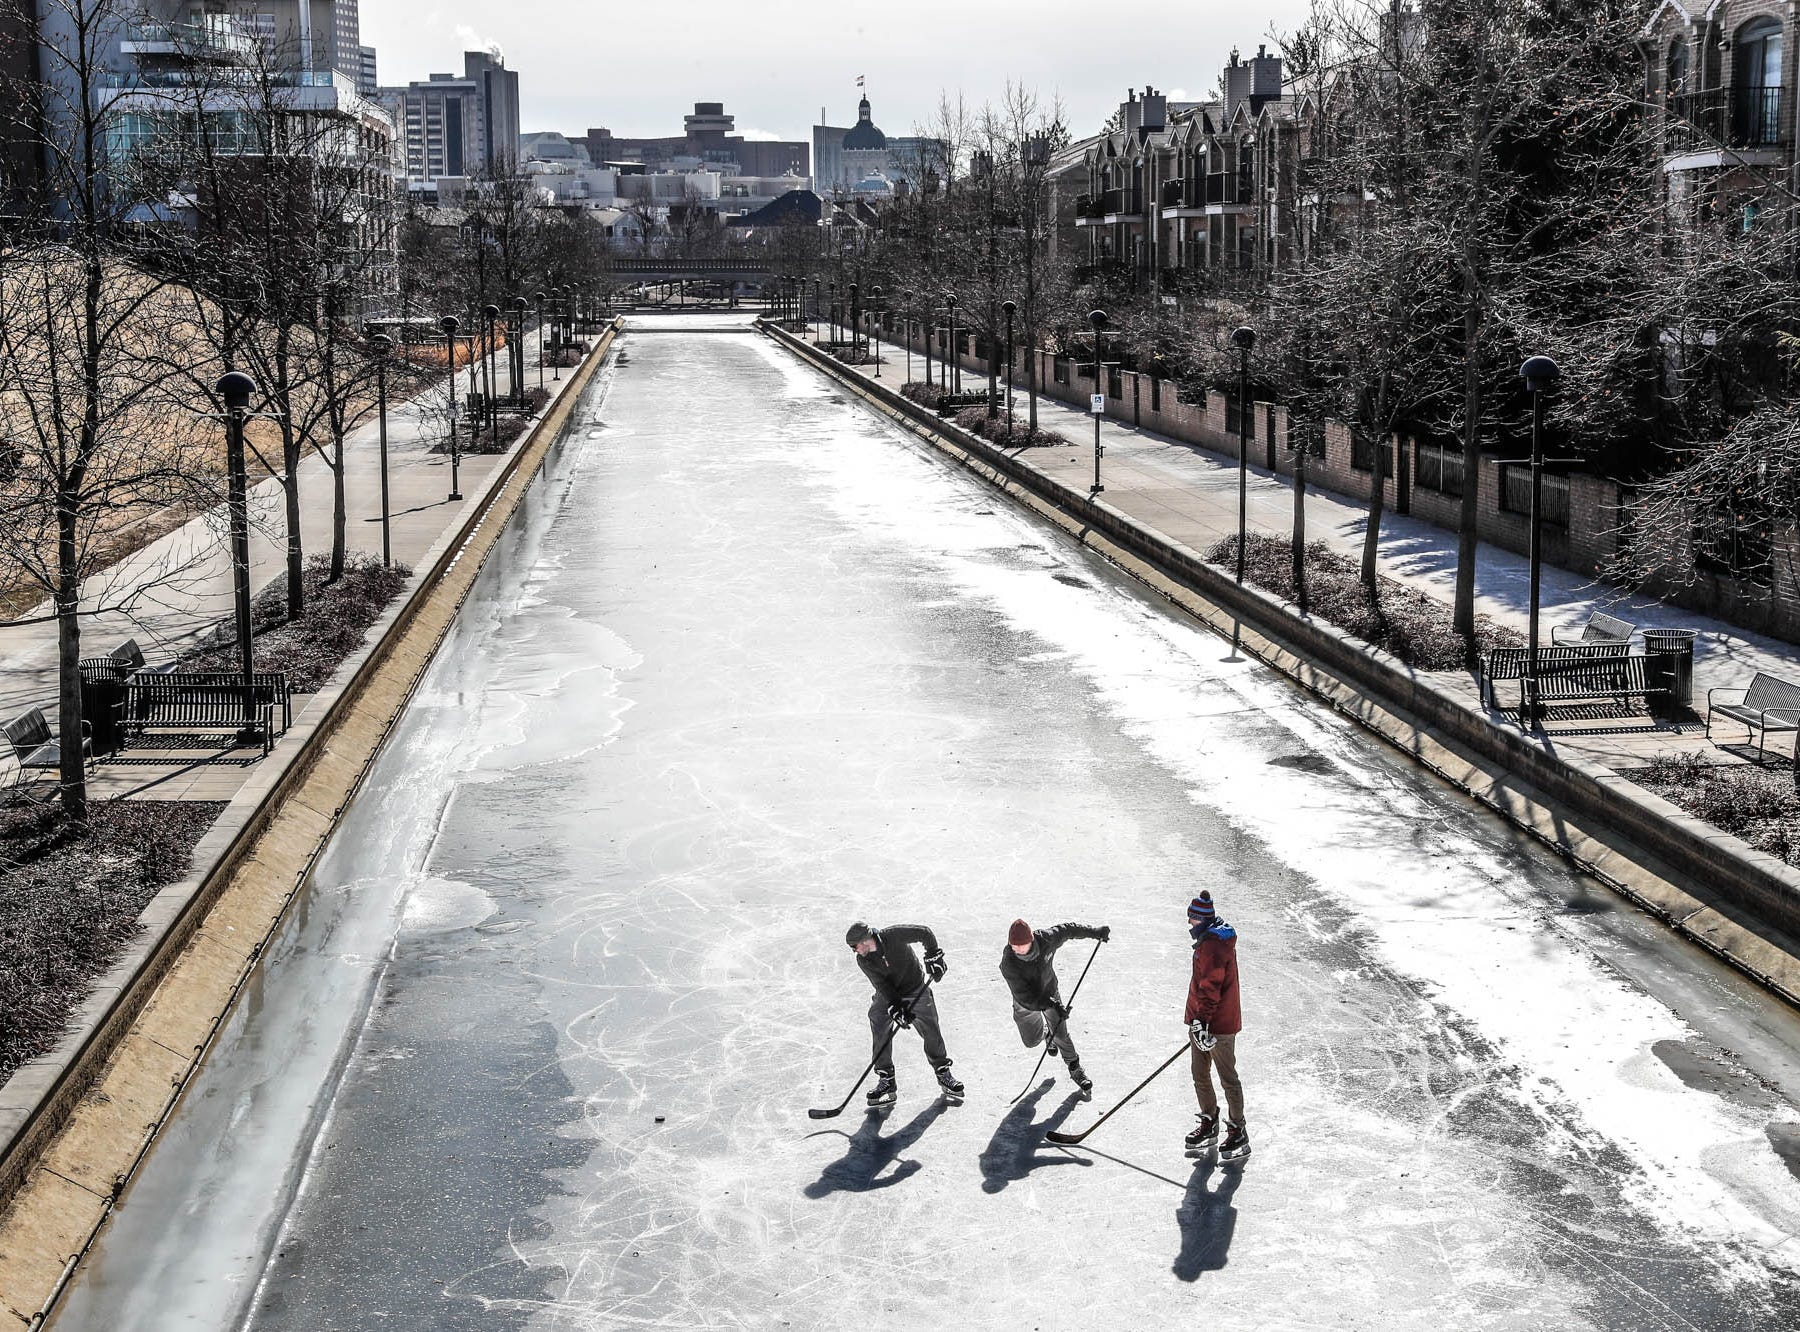 Left to right, friends Chase Fairchild, Charlie Hornett, and Jackson Richey get some free ice time to practice hockey skills on the downtown Indianapolis canal on Thursday, Jan. 31, 2019.